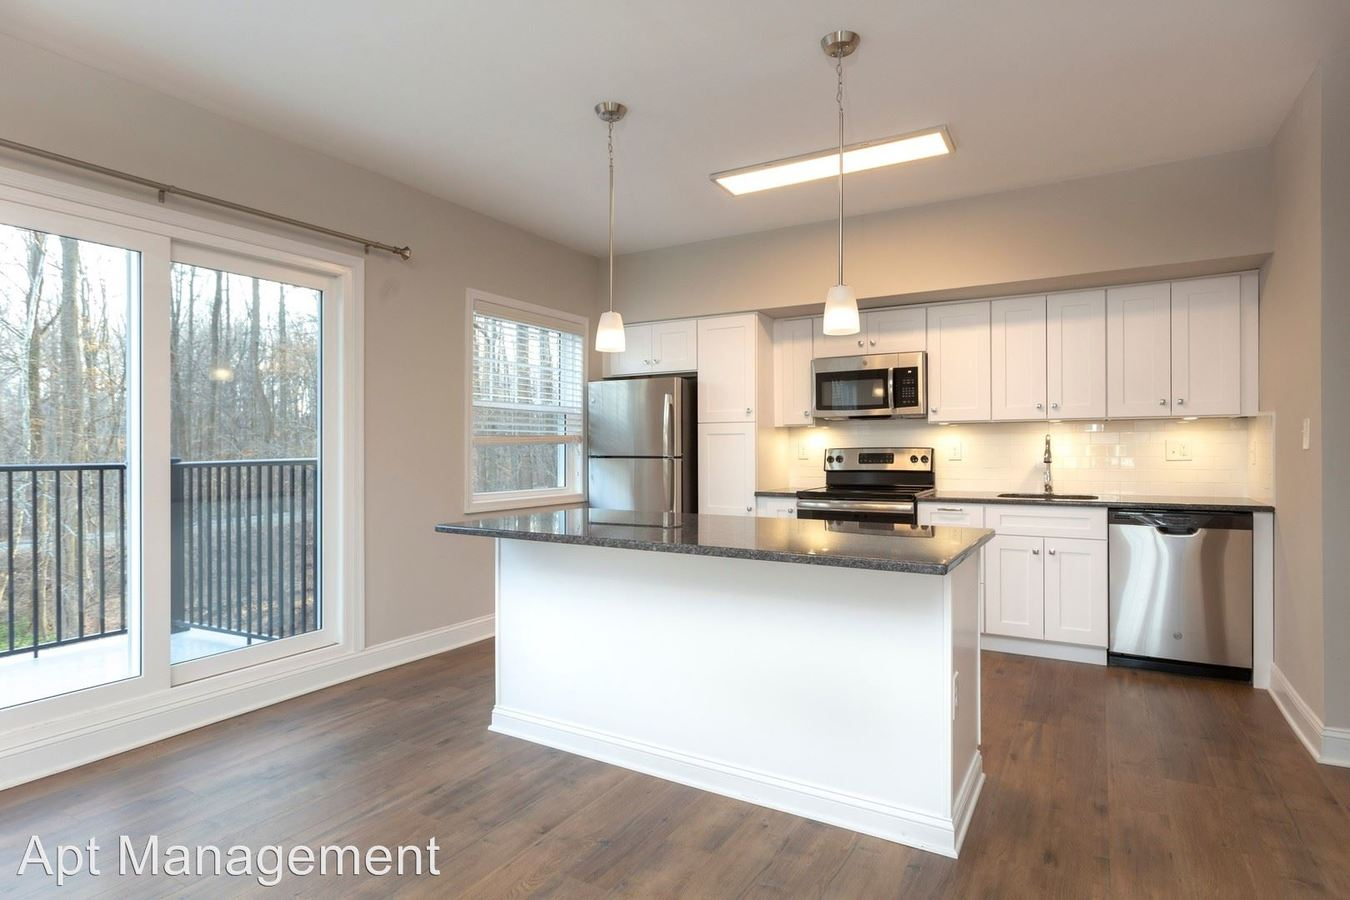 2 Bedrooms 2 Bathrooms Apartment for rent at 313 Creek Drive in Radnor, PA